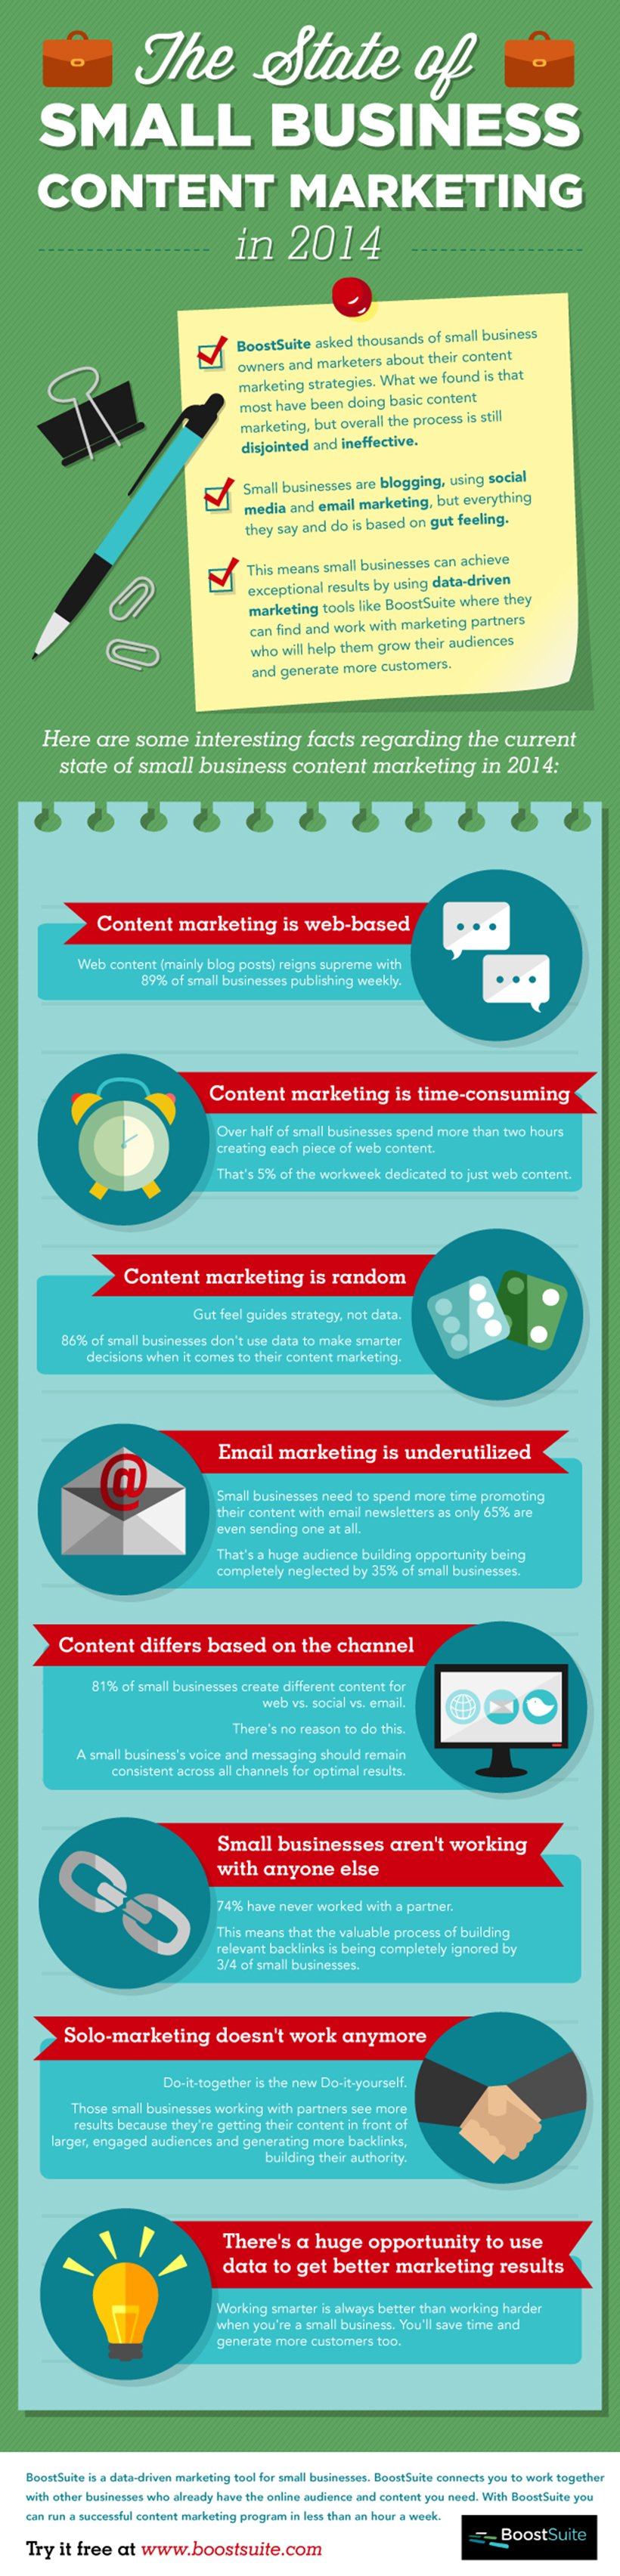 Small business can achieve exceptional results by using data-driven marketing tool that will help them grow their audiences and generate more customers.The State Of Small Business #ContentMarketing in 2014 - #infographic